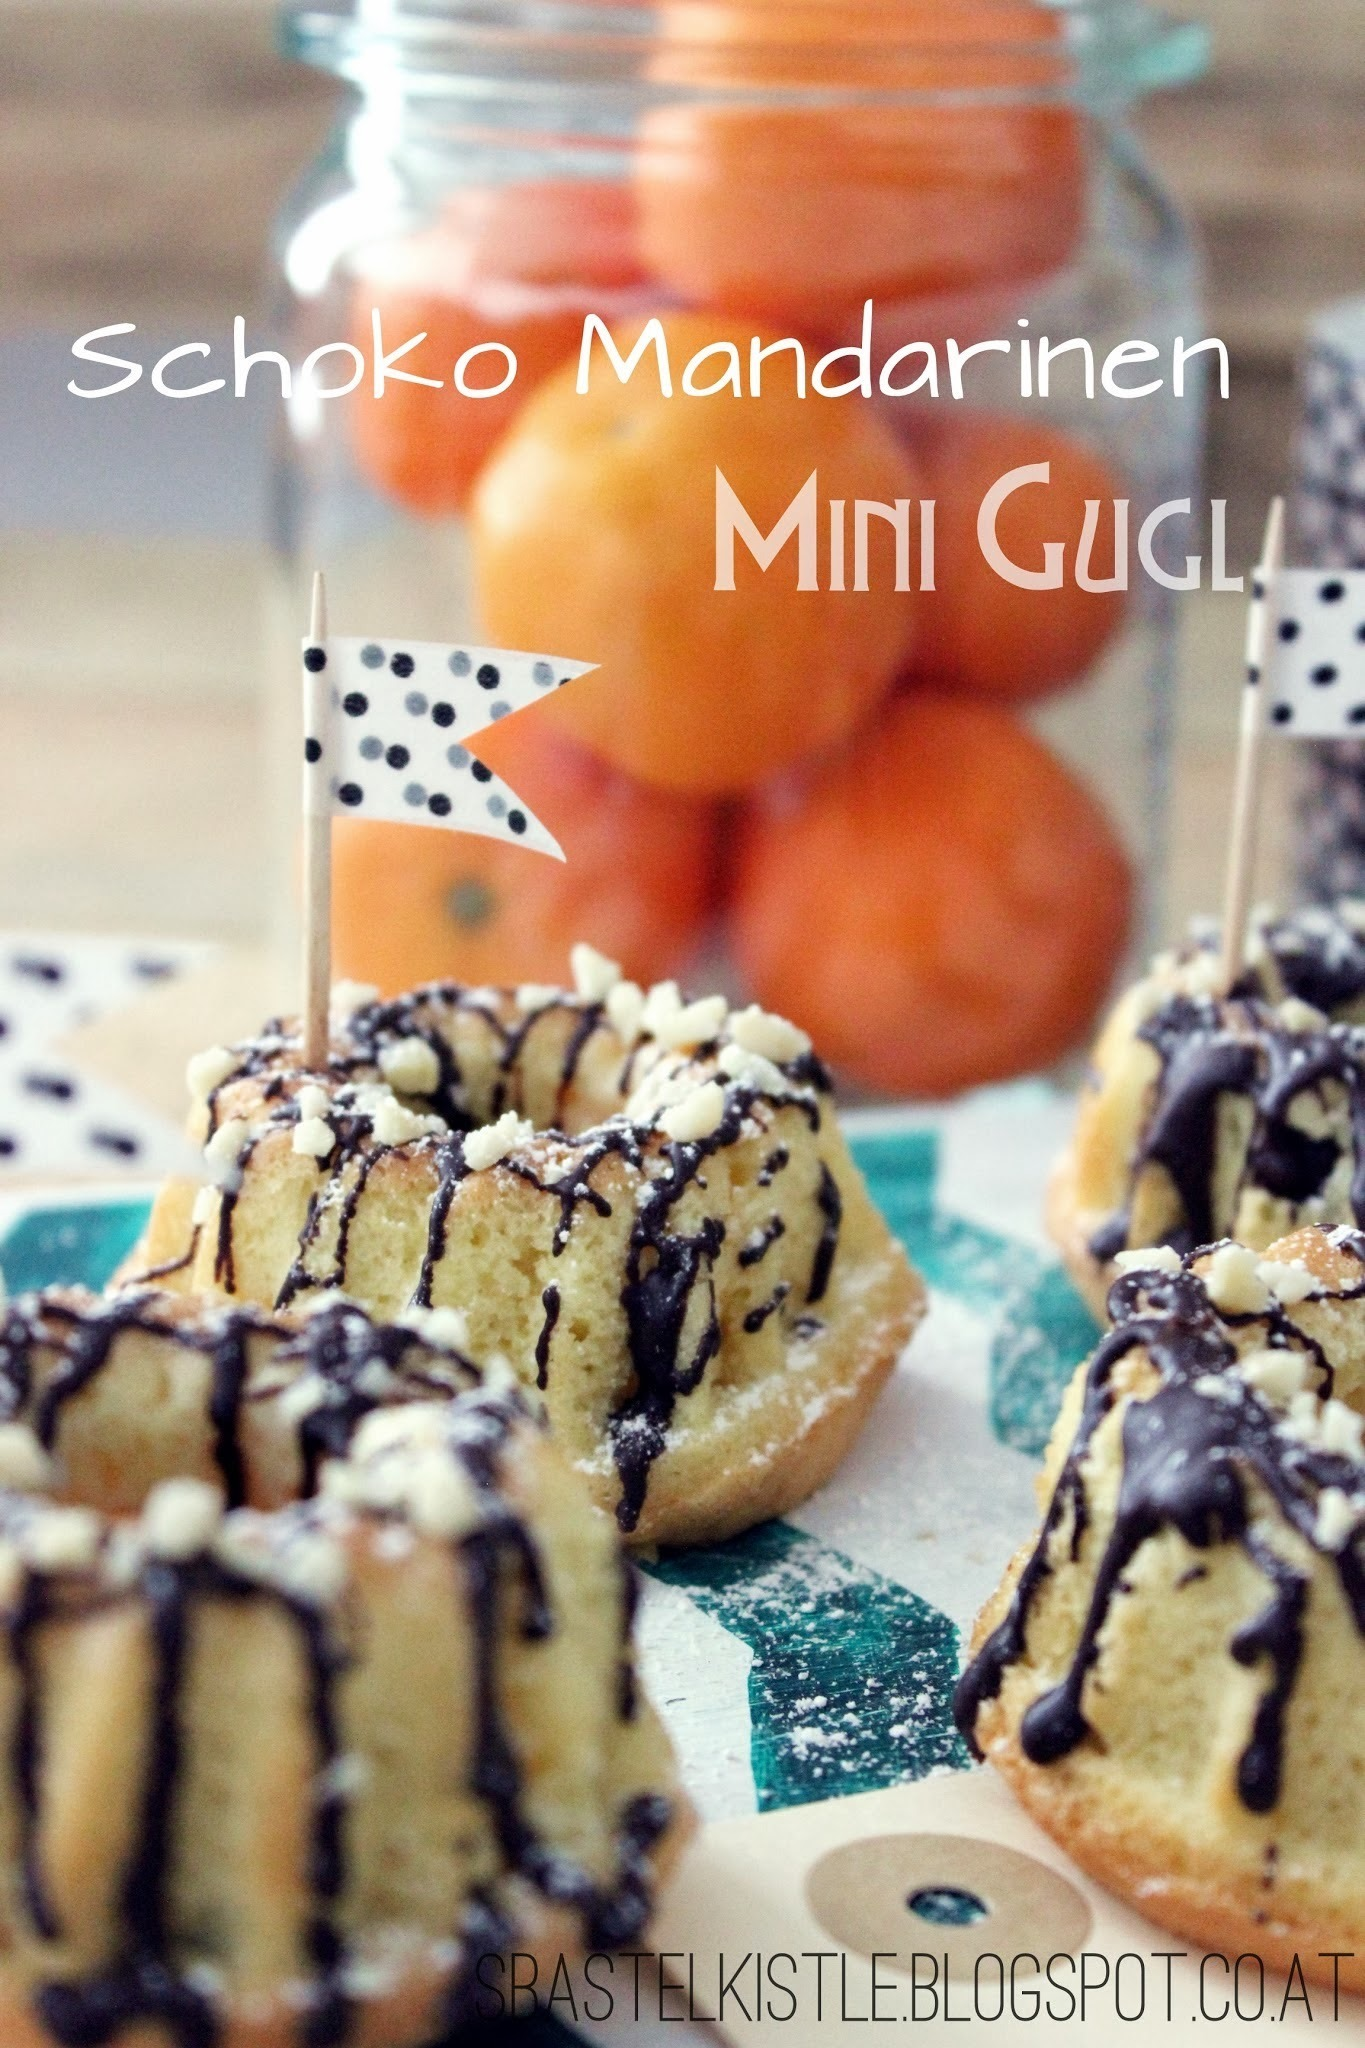 Schoko Mandarinen Mini Gugl